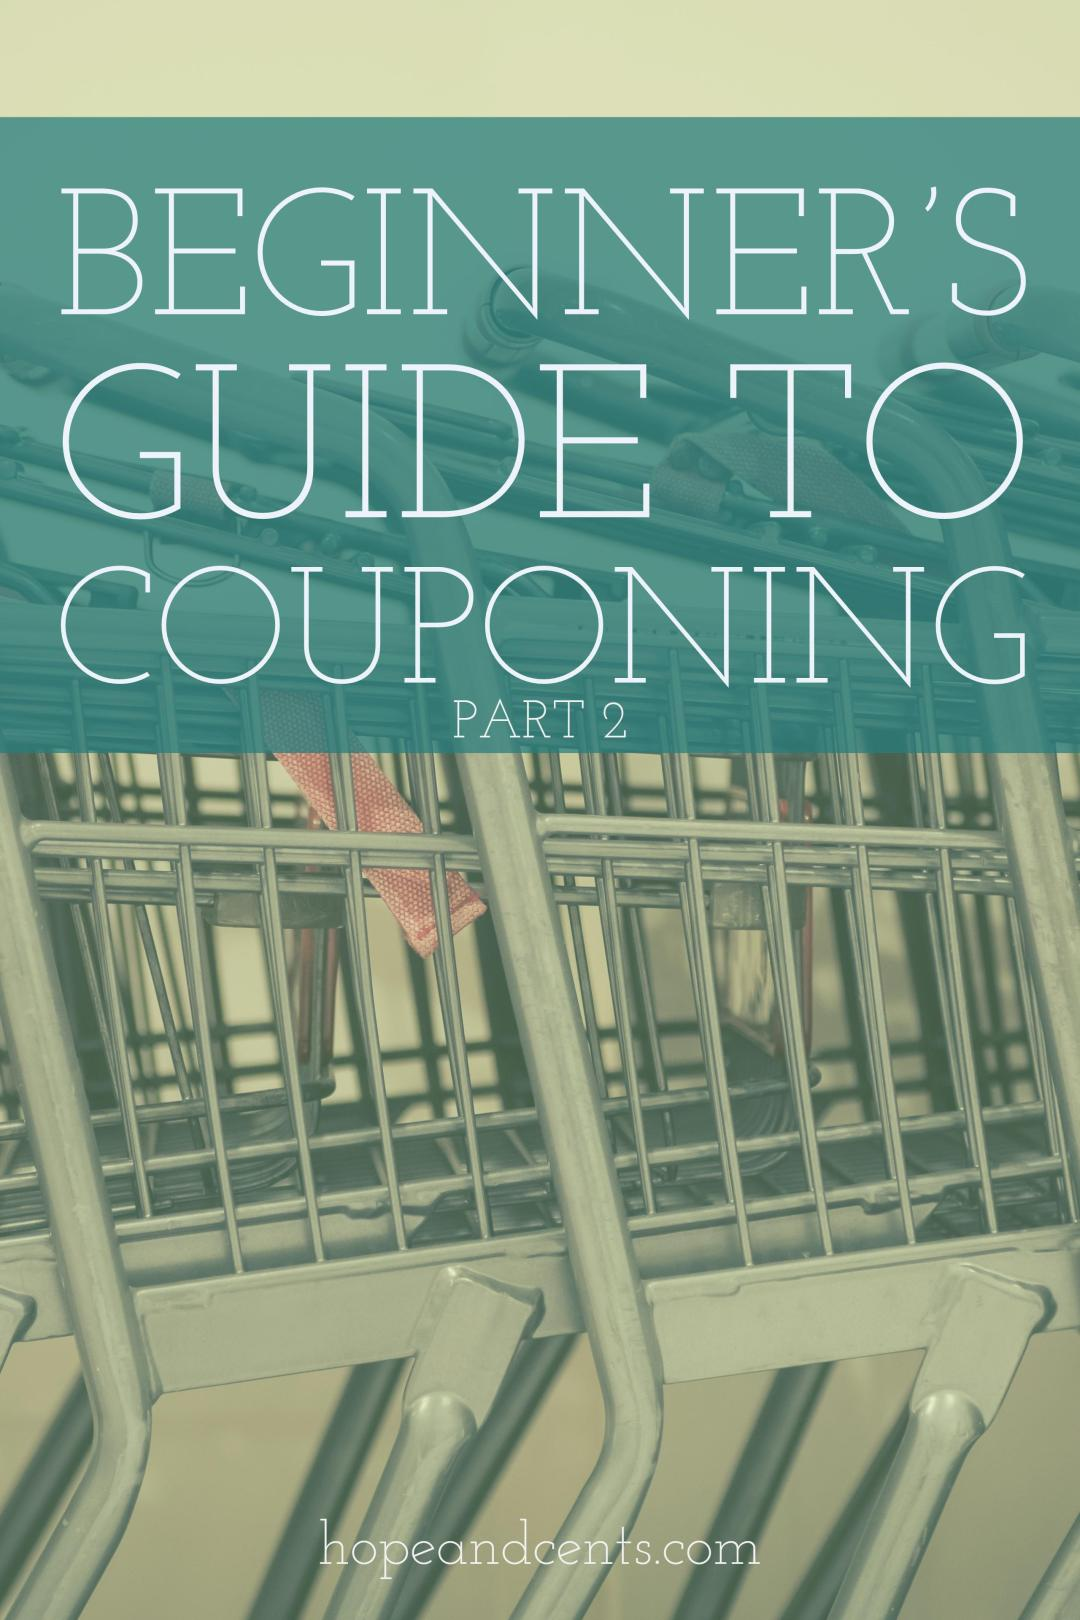 Part 2 in a three-part series. There are various kinds of coupons and sources from which to get them. Familiarize yourself with all of them, as you will use a combination each time you shop.